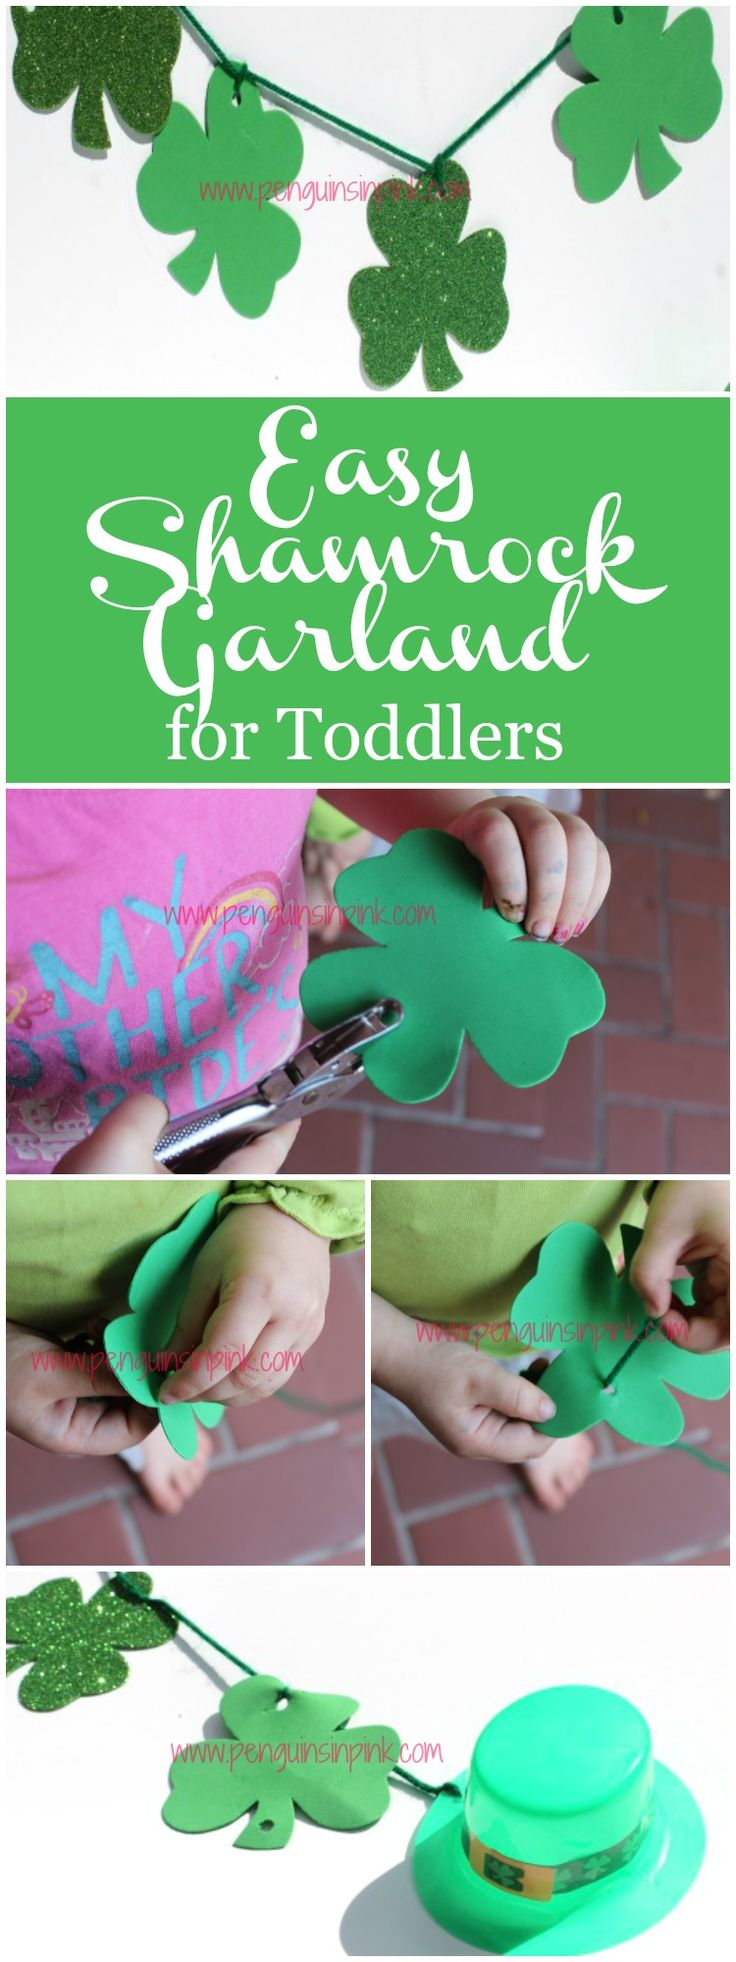 Easy Shamrock Garland for Toddlers - A fun, simple St. Patrick's Day shamrock garland that's easy enough for toddlers to make. Plus it exercises their fine motor skills.